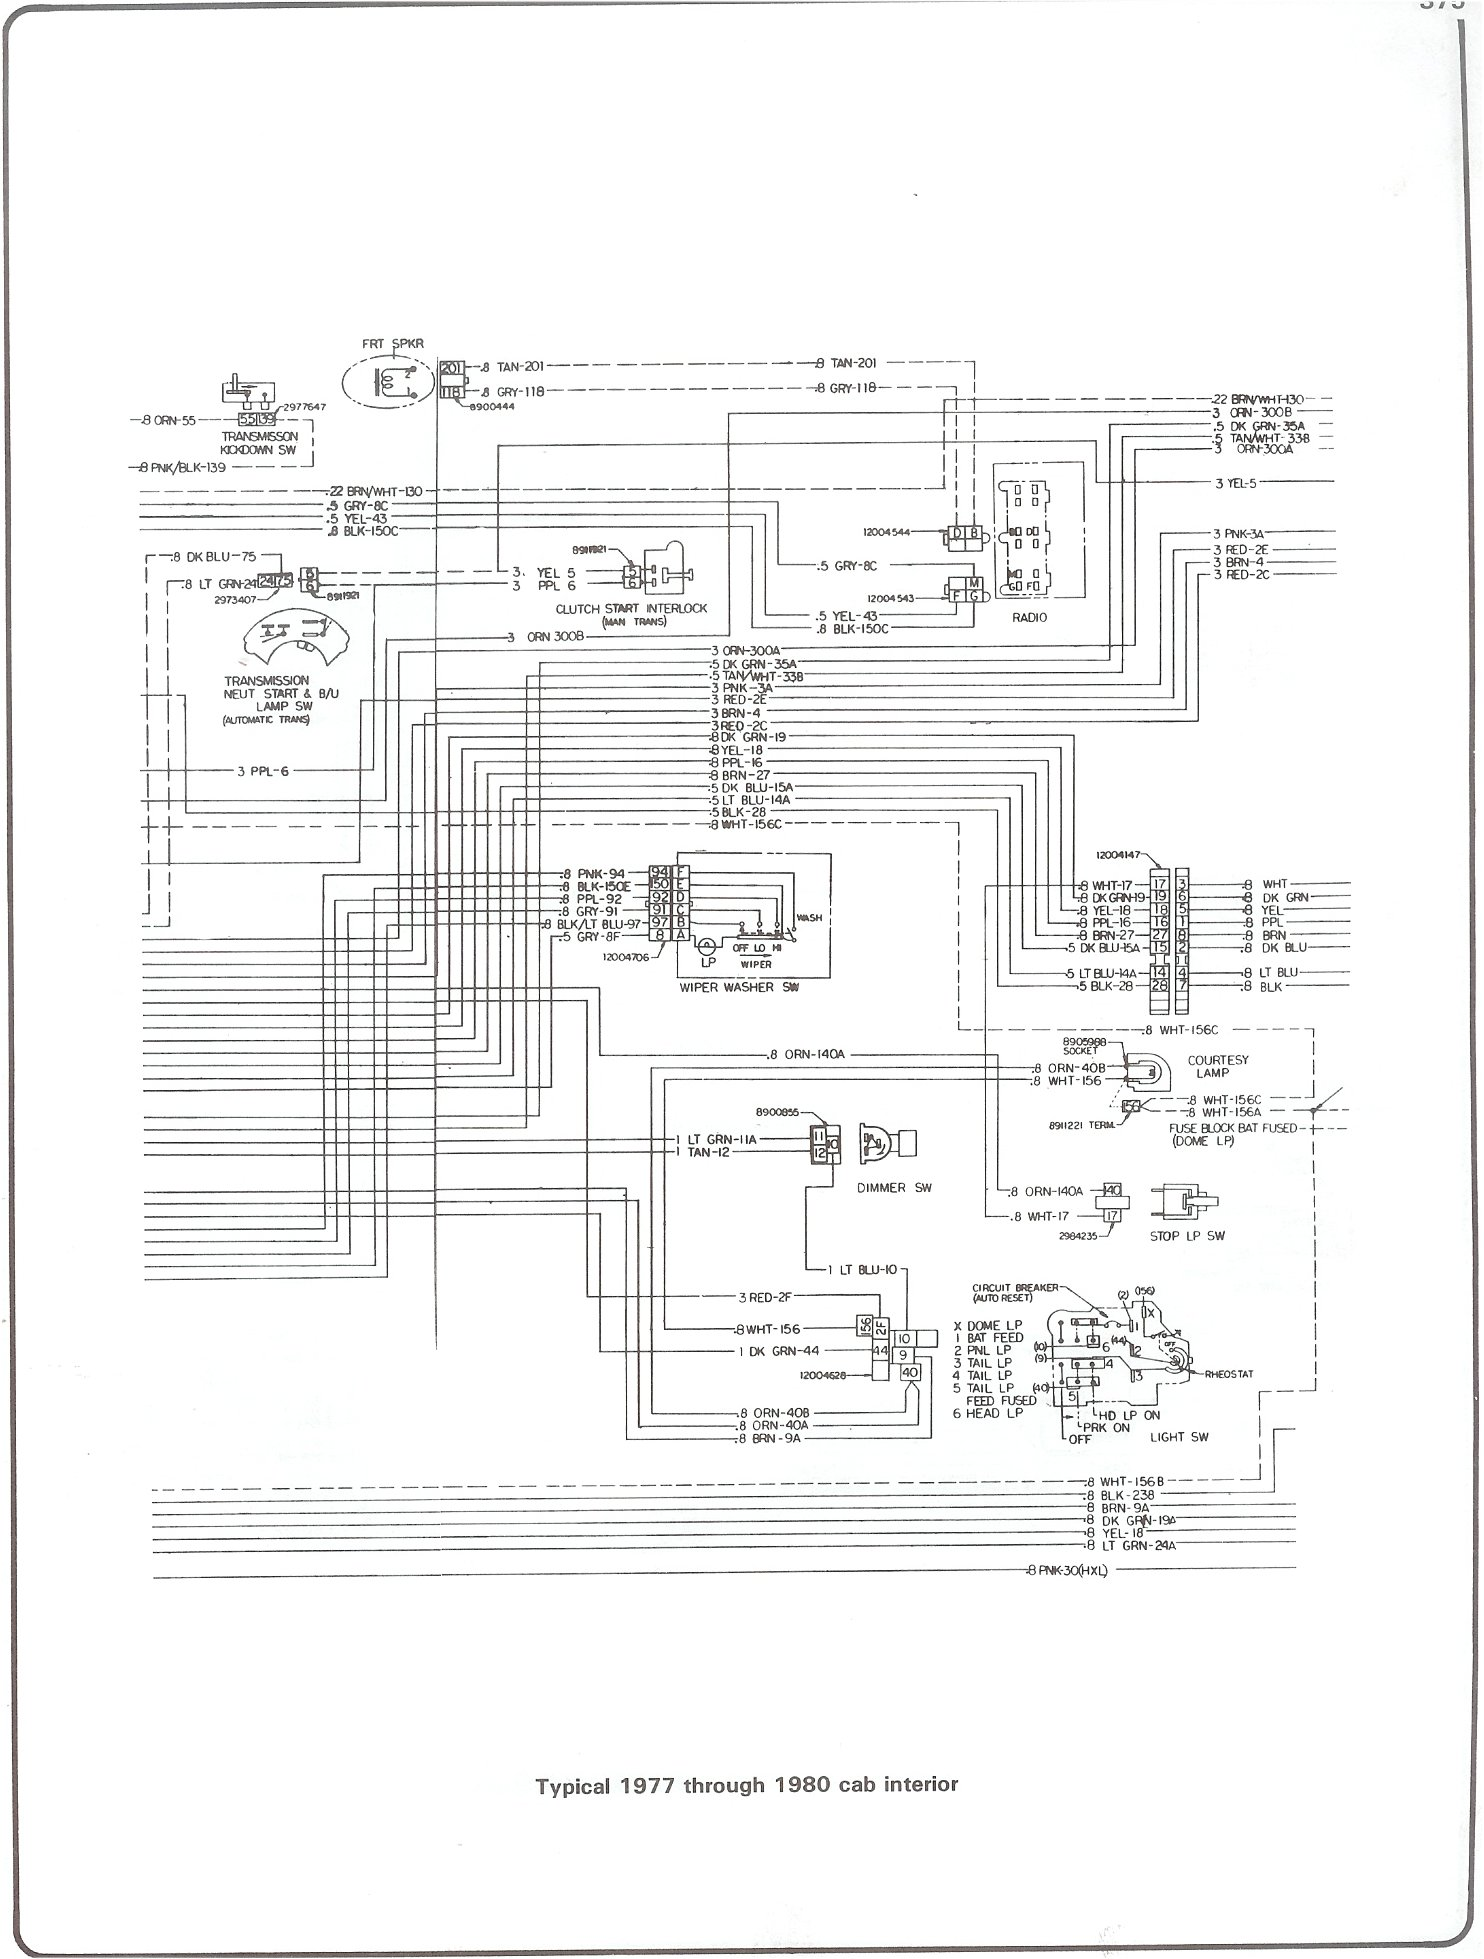 1980 Chevrolet K20 Fuse Box Wired Badly -Av Equipment Wiring Diagrams |  Begeboy Wiring Diagram Source | 1980 Chevrolet K20 Fuse Box Wired Badly |  | Bege Wiring Diagram - Begeboy Wiring Diagram Source